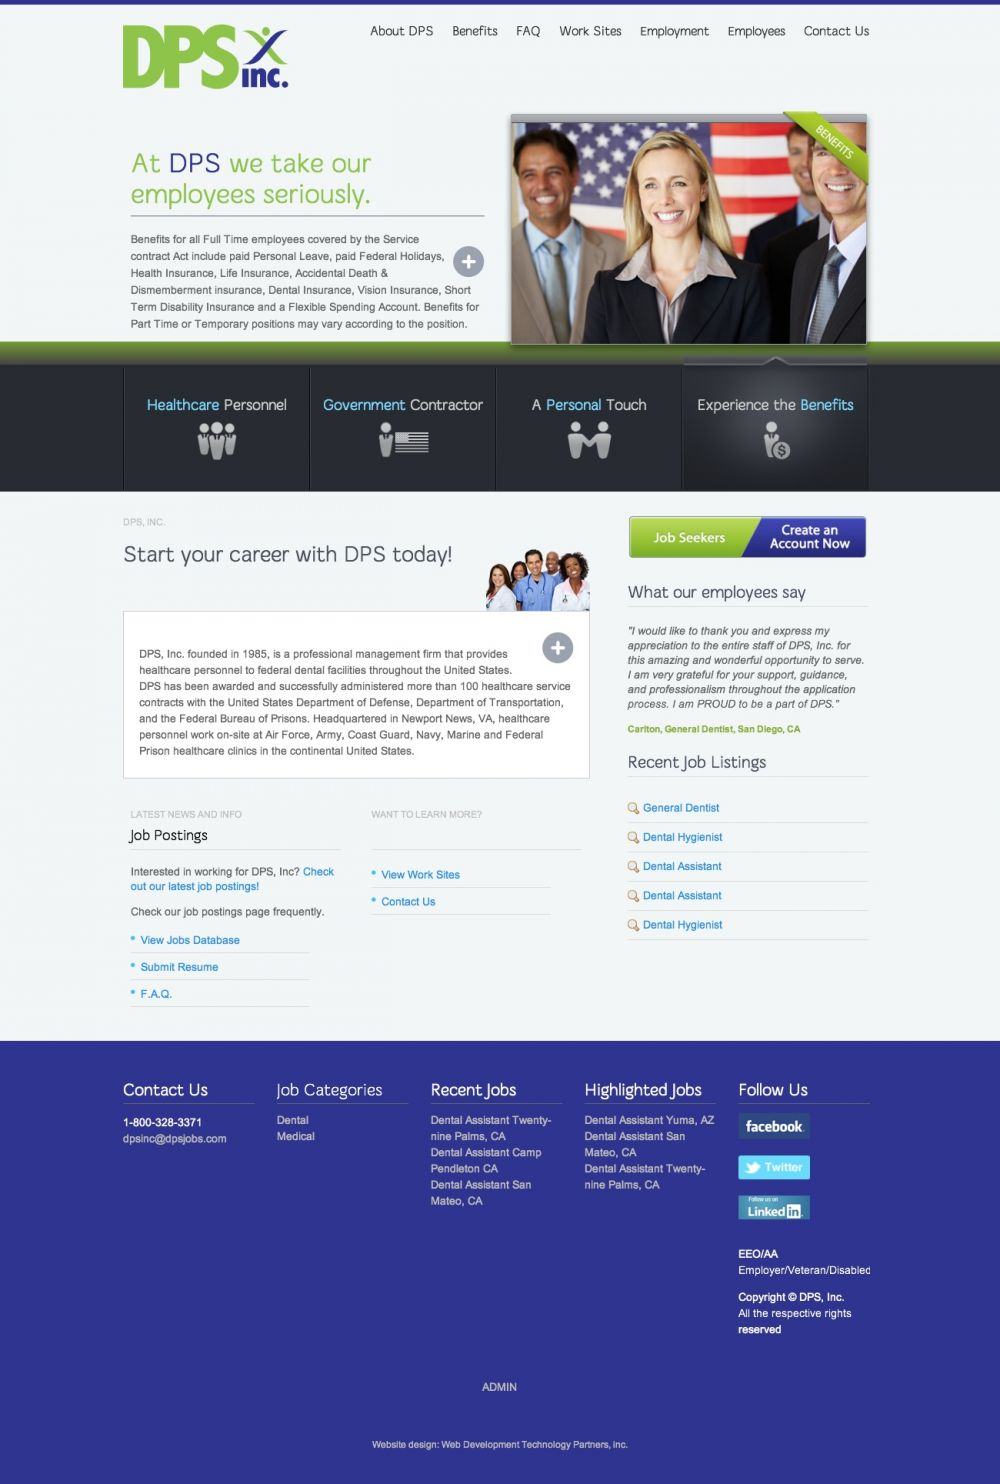 DPS Jobs 2015 Redesign